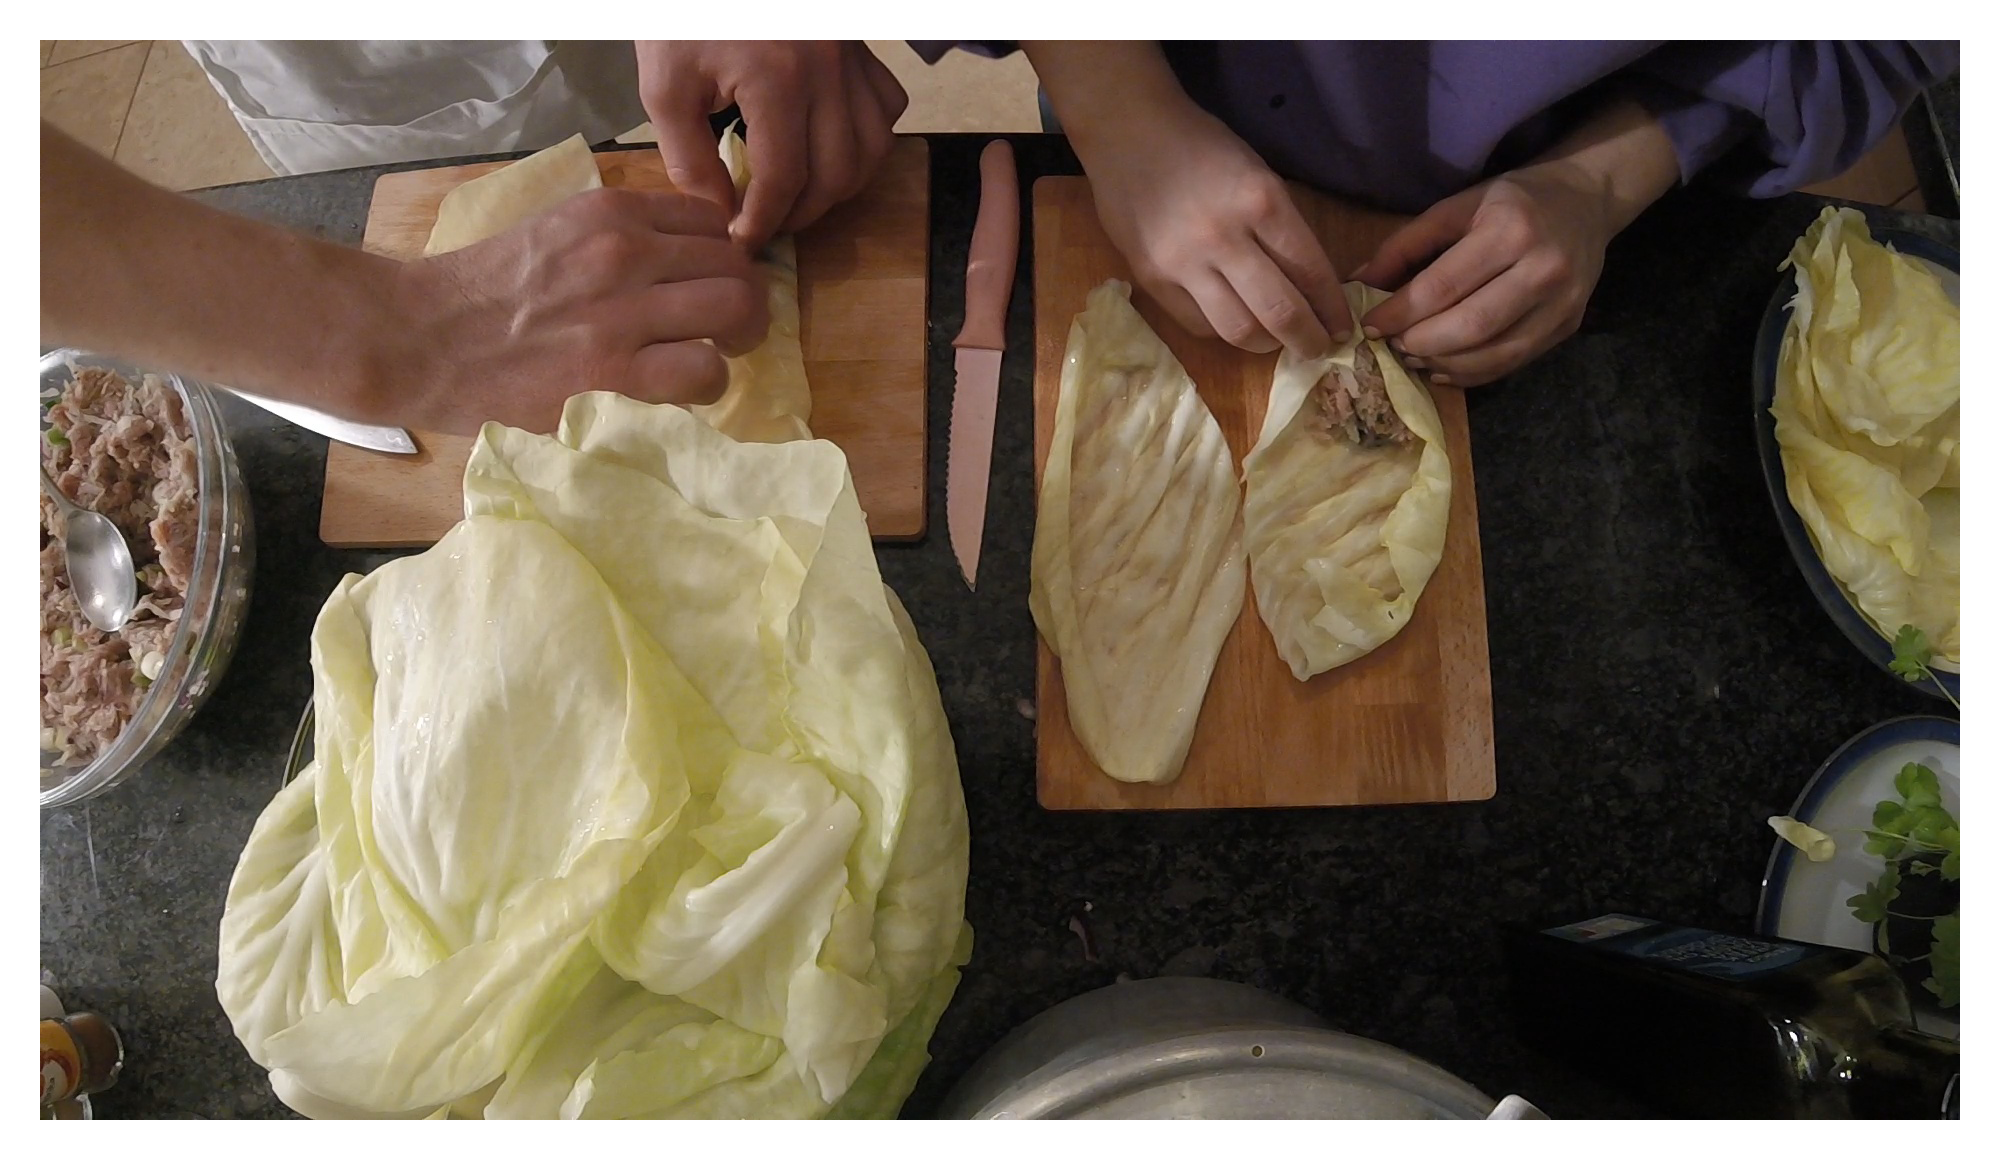 Episode 2 - Lahanontolmades (Stuffed Cabbage Rolls)